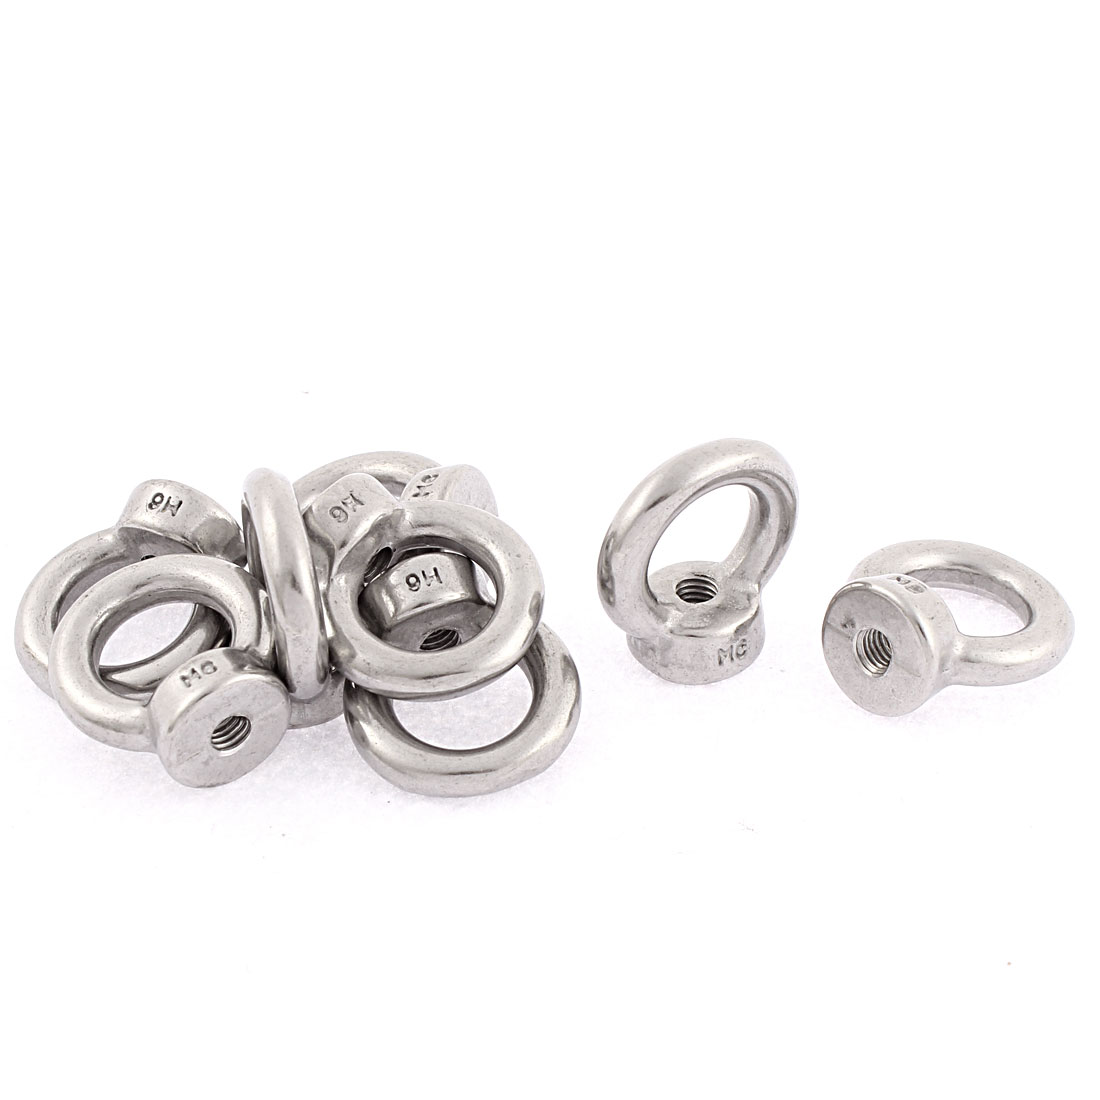 Marine Cable Rope M6 Female Thread Metal Lifting Eye Nuts Bolt Ring 8pcs